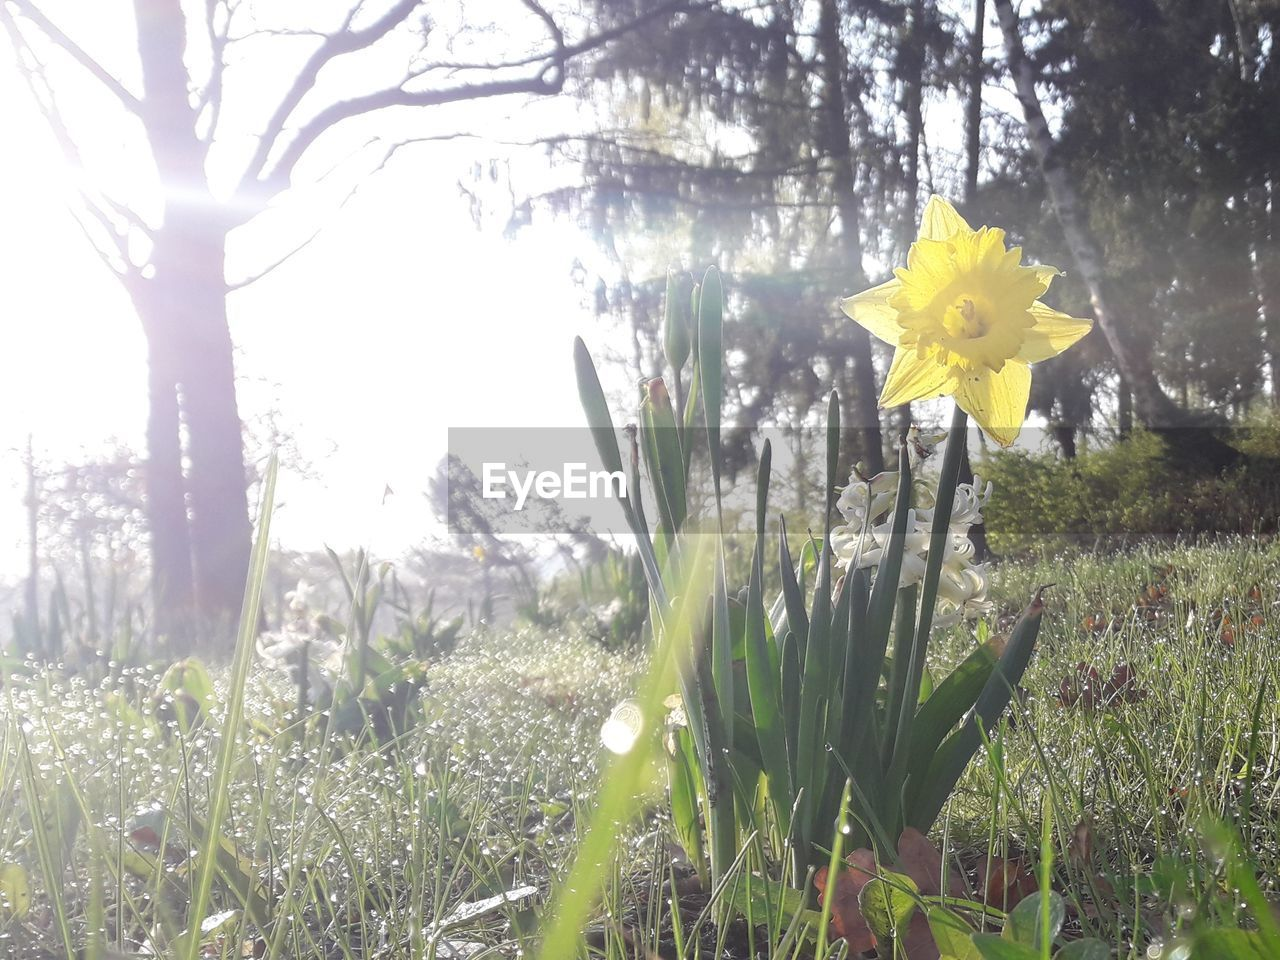 plant, flower, flowering plant, beauty in nature, growth, yellow, vulnerability, freshness, fragility, nature, field, petal, day, land, no people, close-up, flower head, inflorescence, daffodil, tree, outdoors, springtime